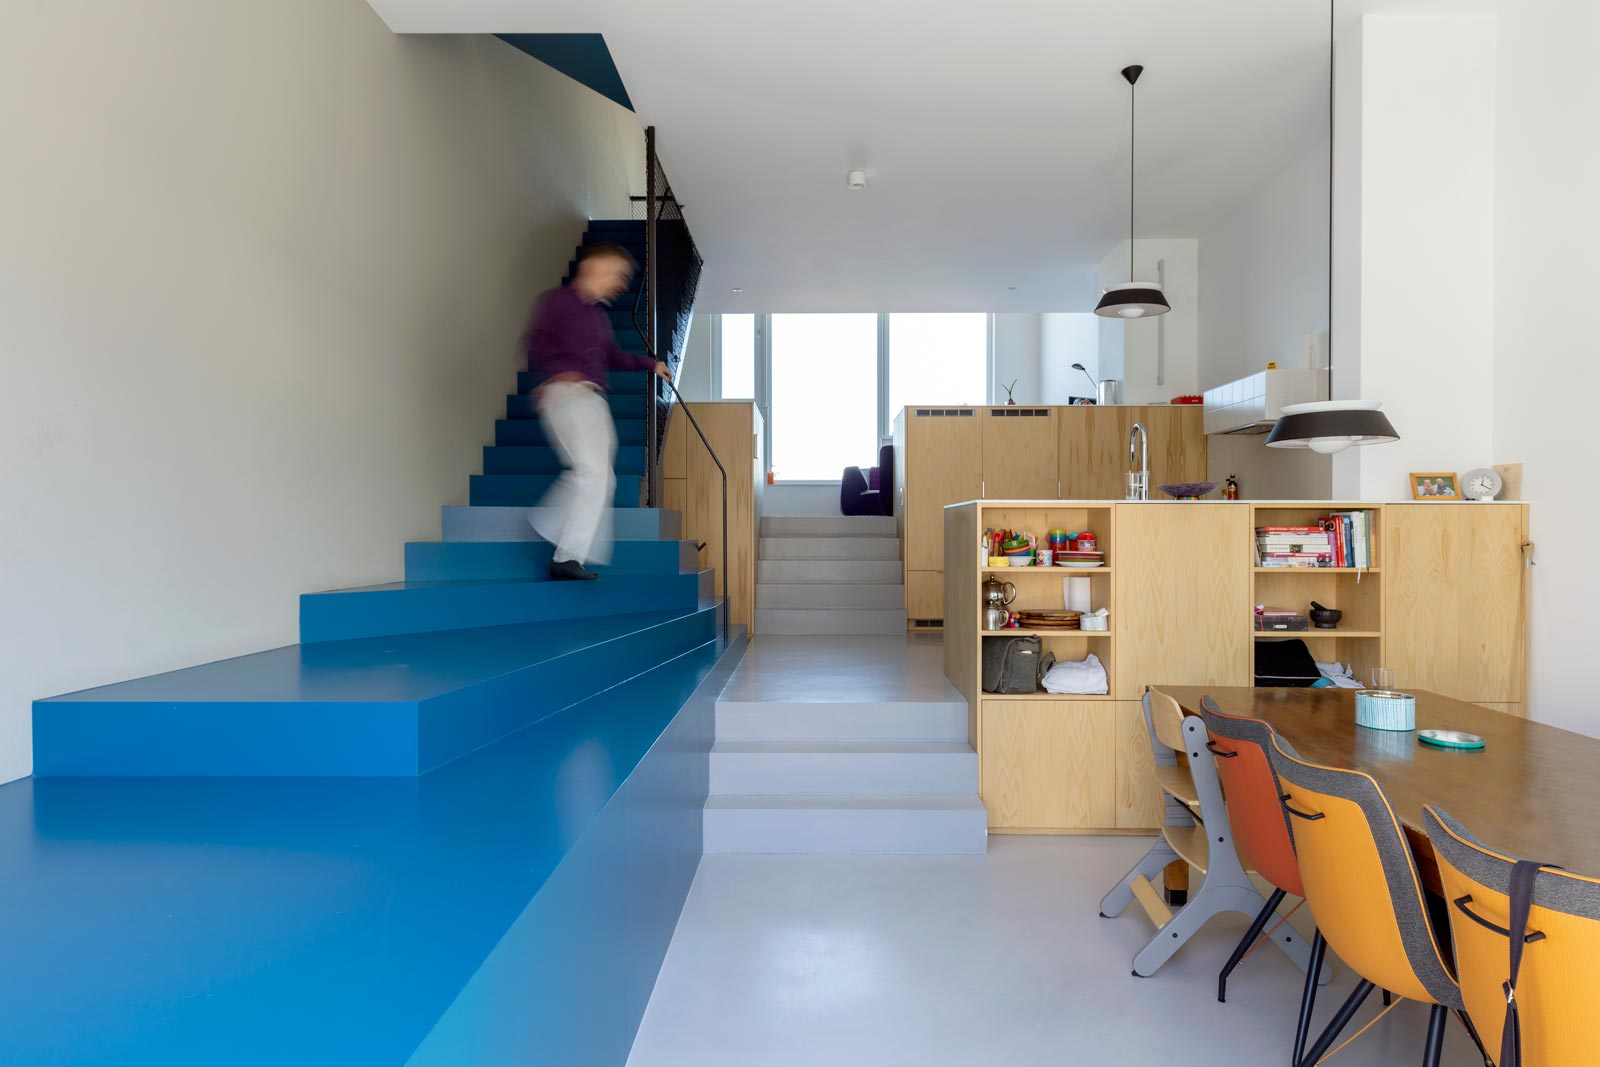 blue house by BETA sculptural staircase and kitchen